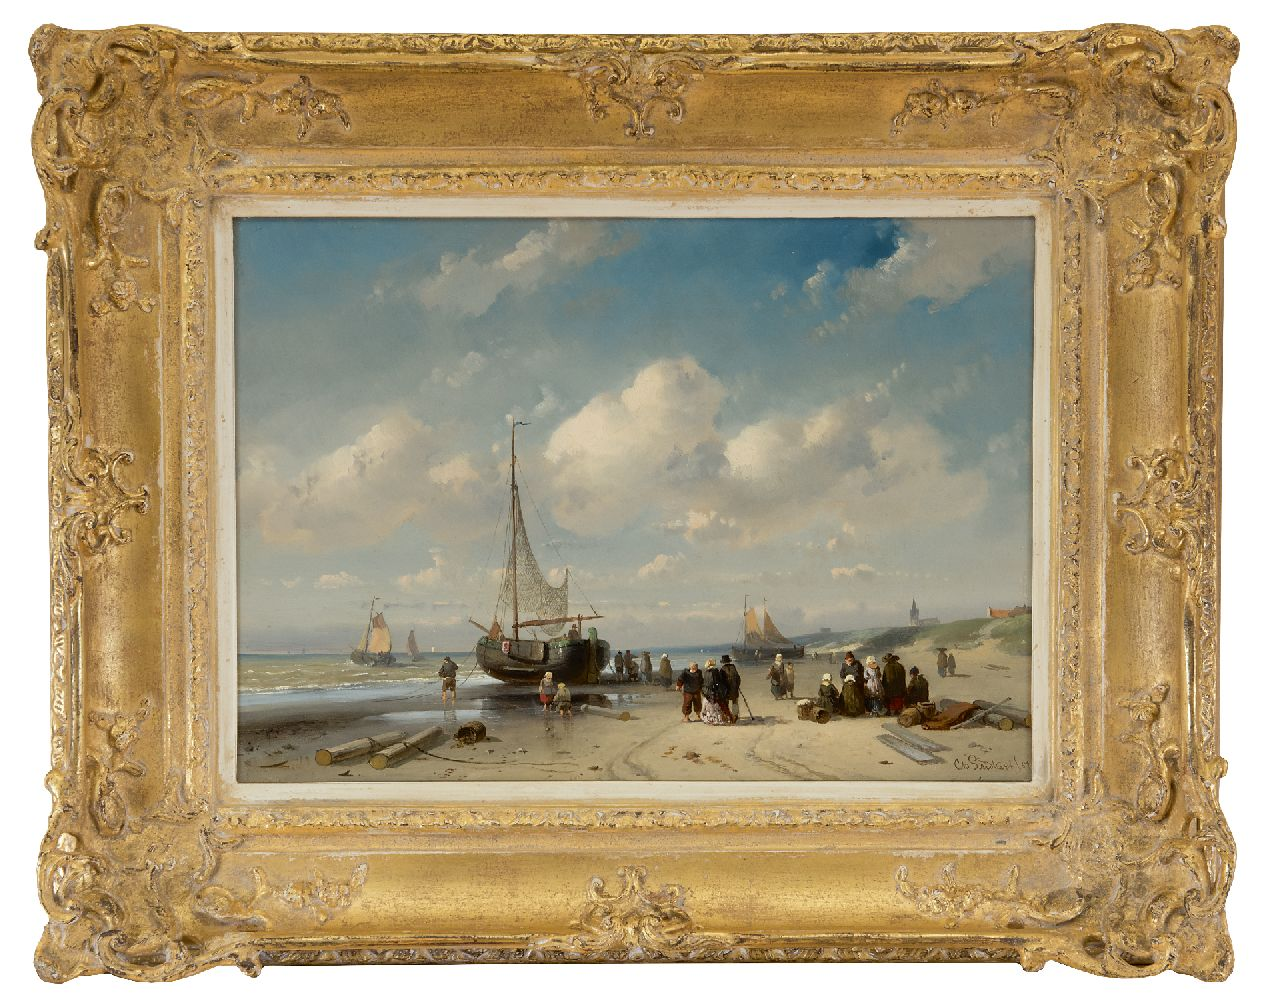 Leickert C.H.J.  | 'Charles' Henri Joseph Leickert | Paintings offered for sale | Fishermen and an elegant couple on the beach at Scheveningen, oil on panel 27.5 x 38.7 cm, signed l.r. in full and l.l. indistinctly and dated '57